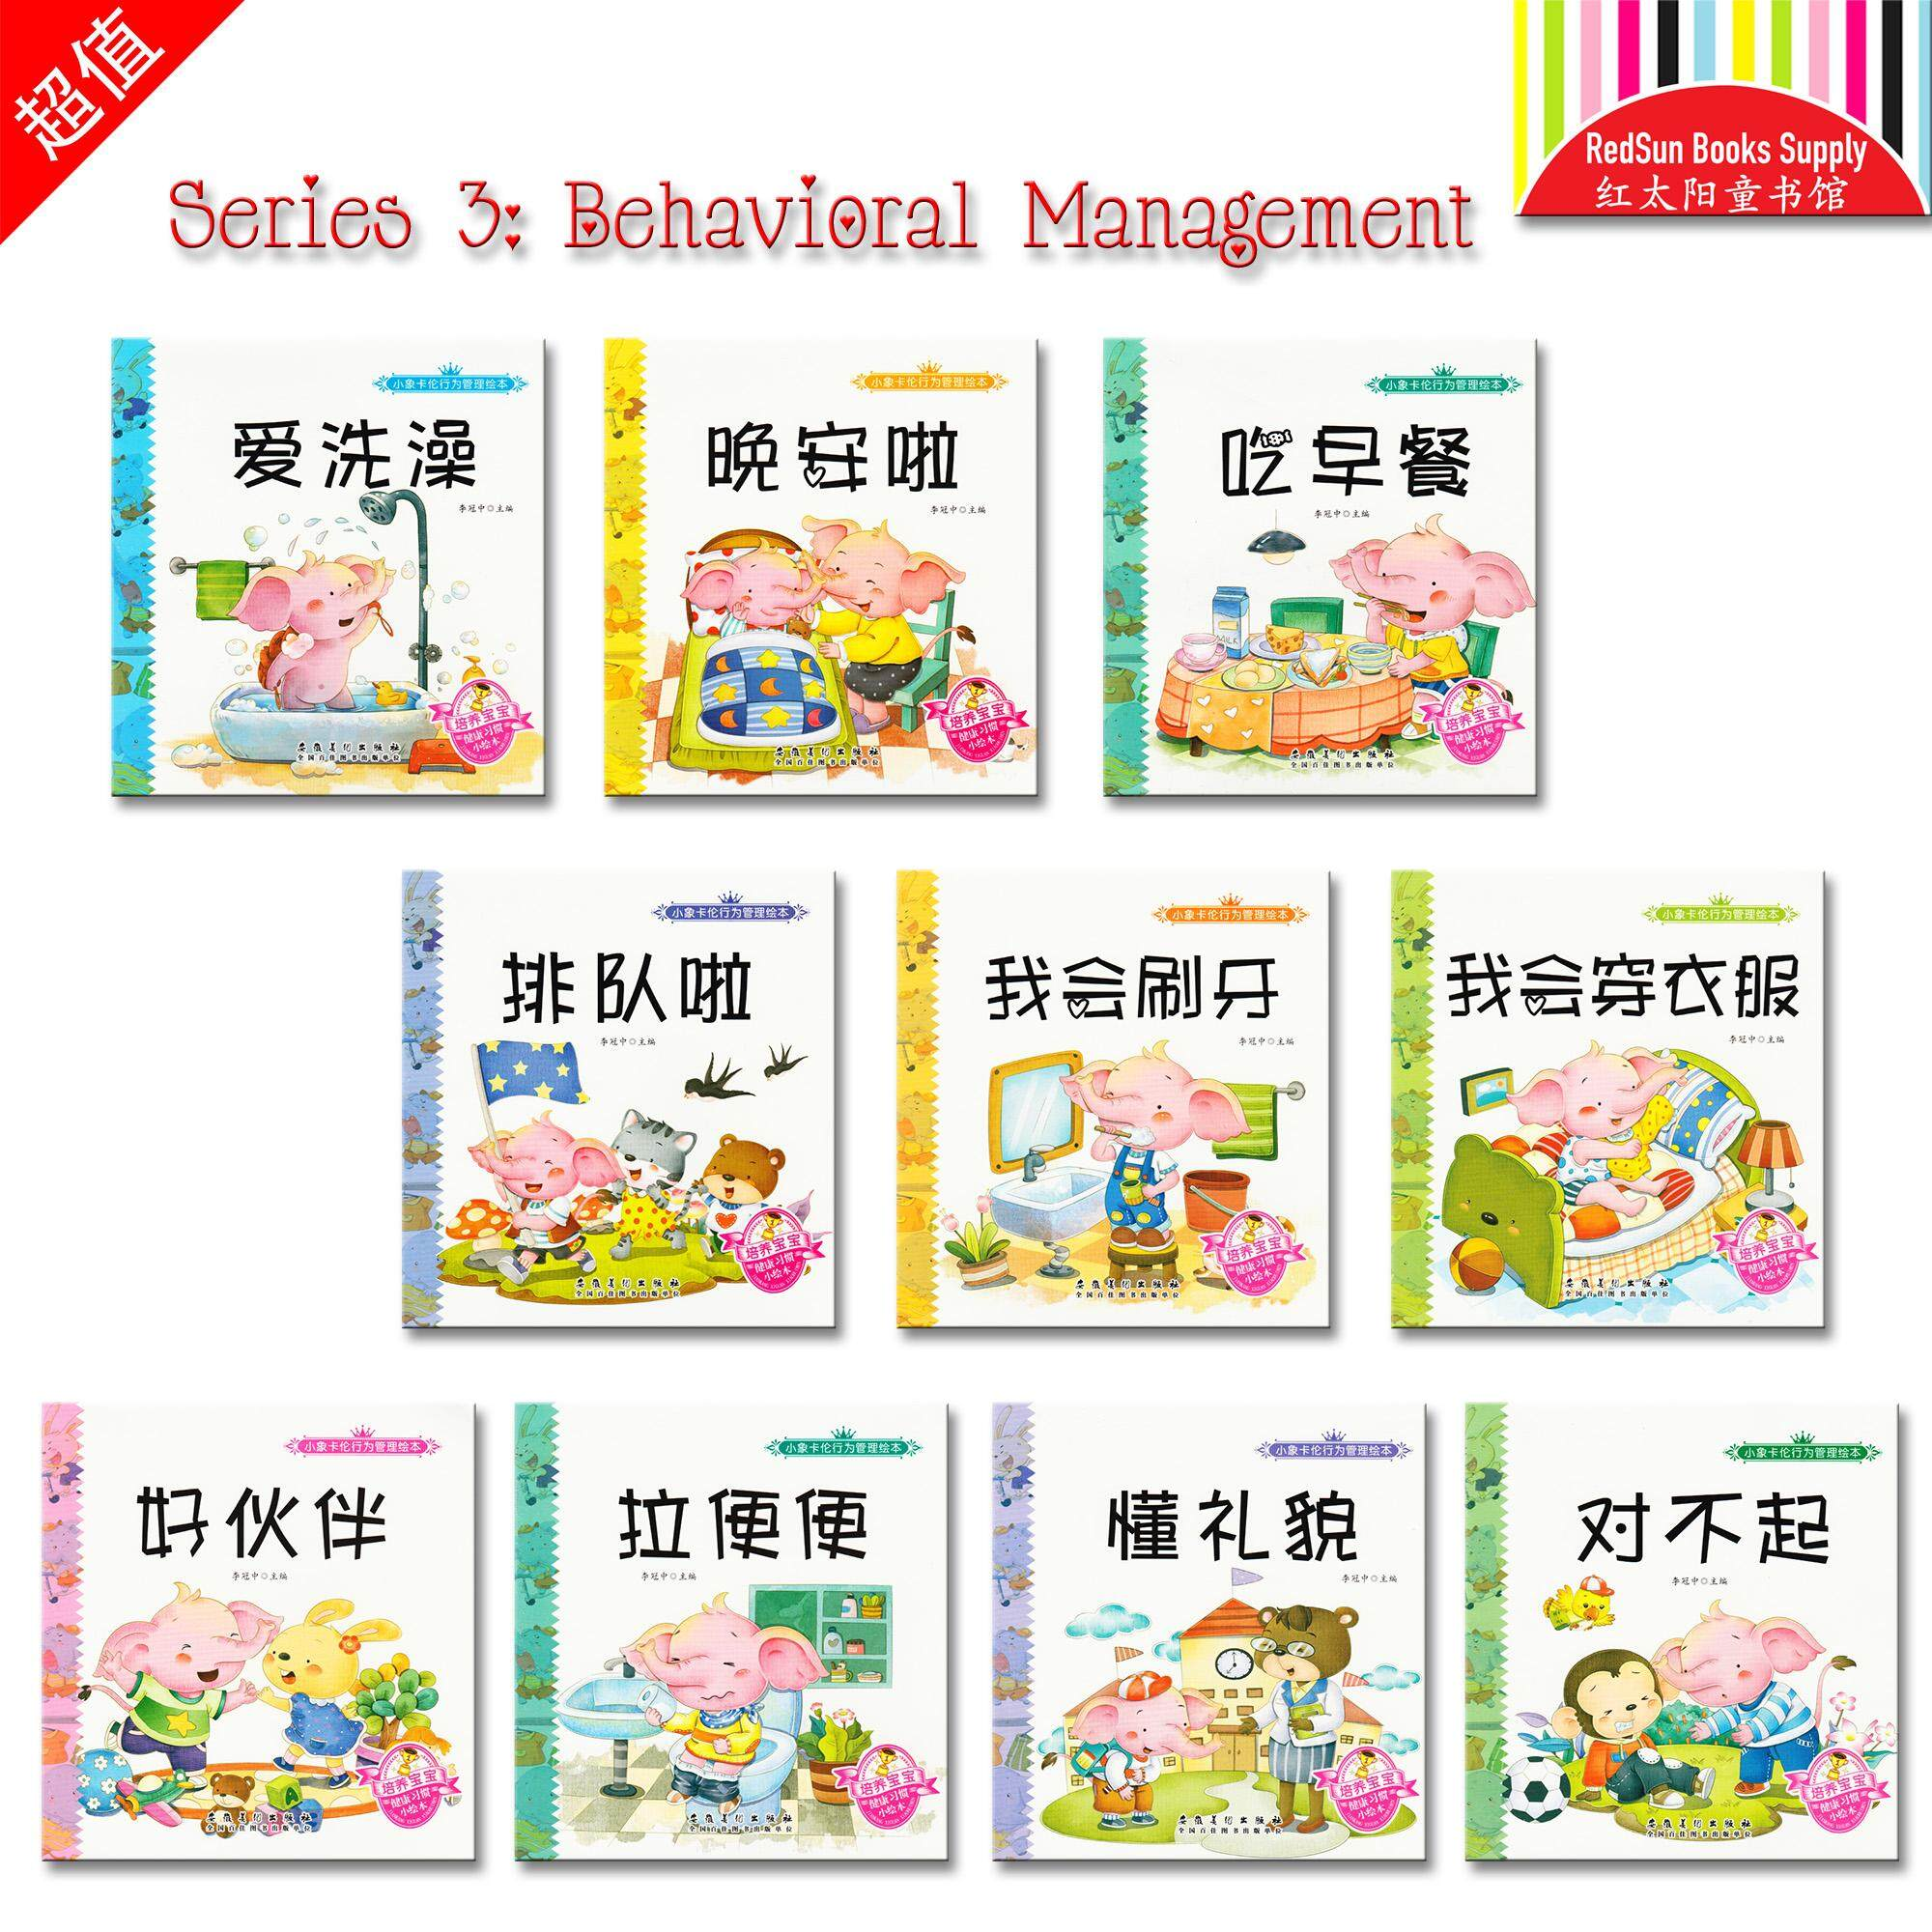 Double Language Behavioral Management Children Picture Book (10 Books)